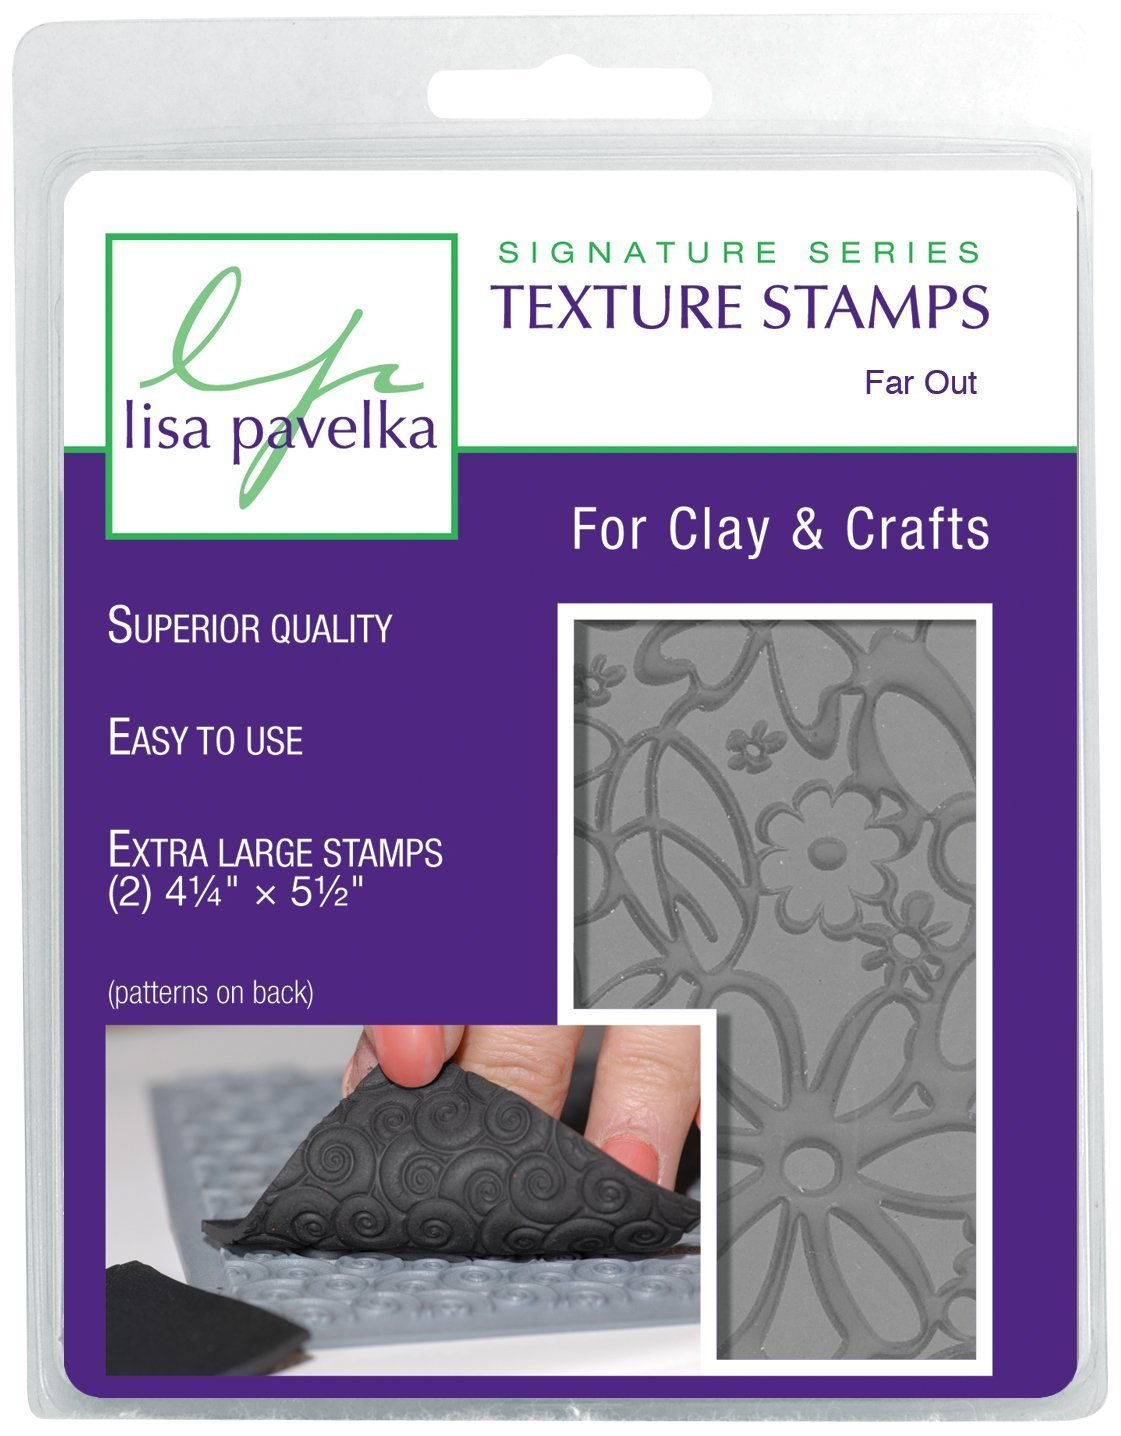 Lisa Pavelka Texture Stamp Kit Far Out (Style #082) The Great Create Inc.